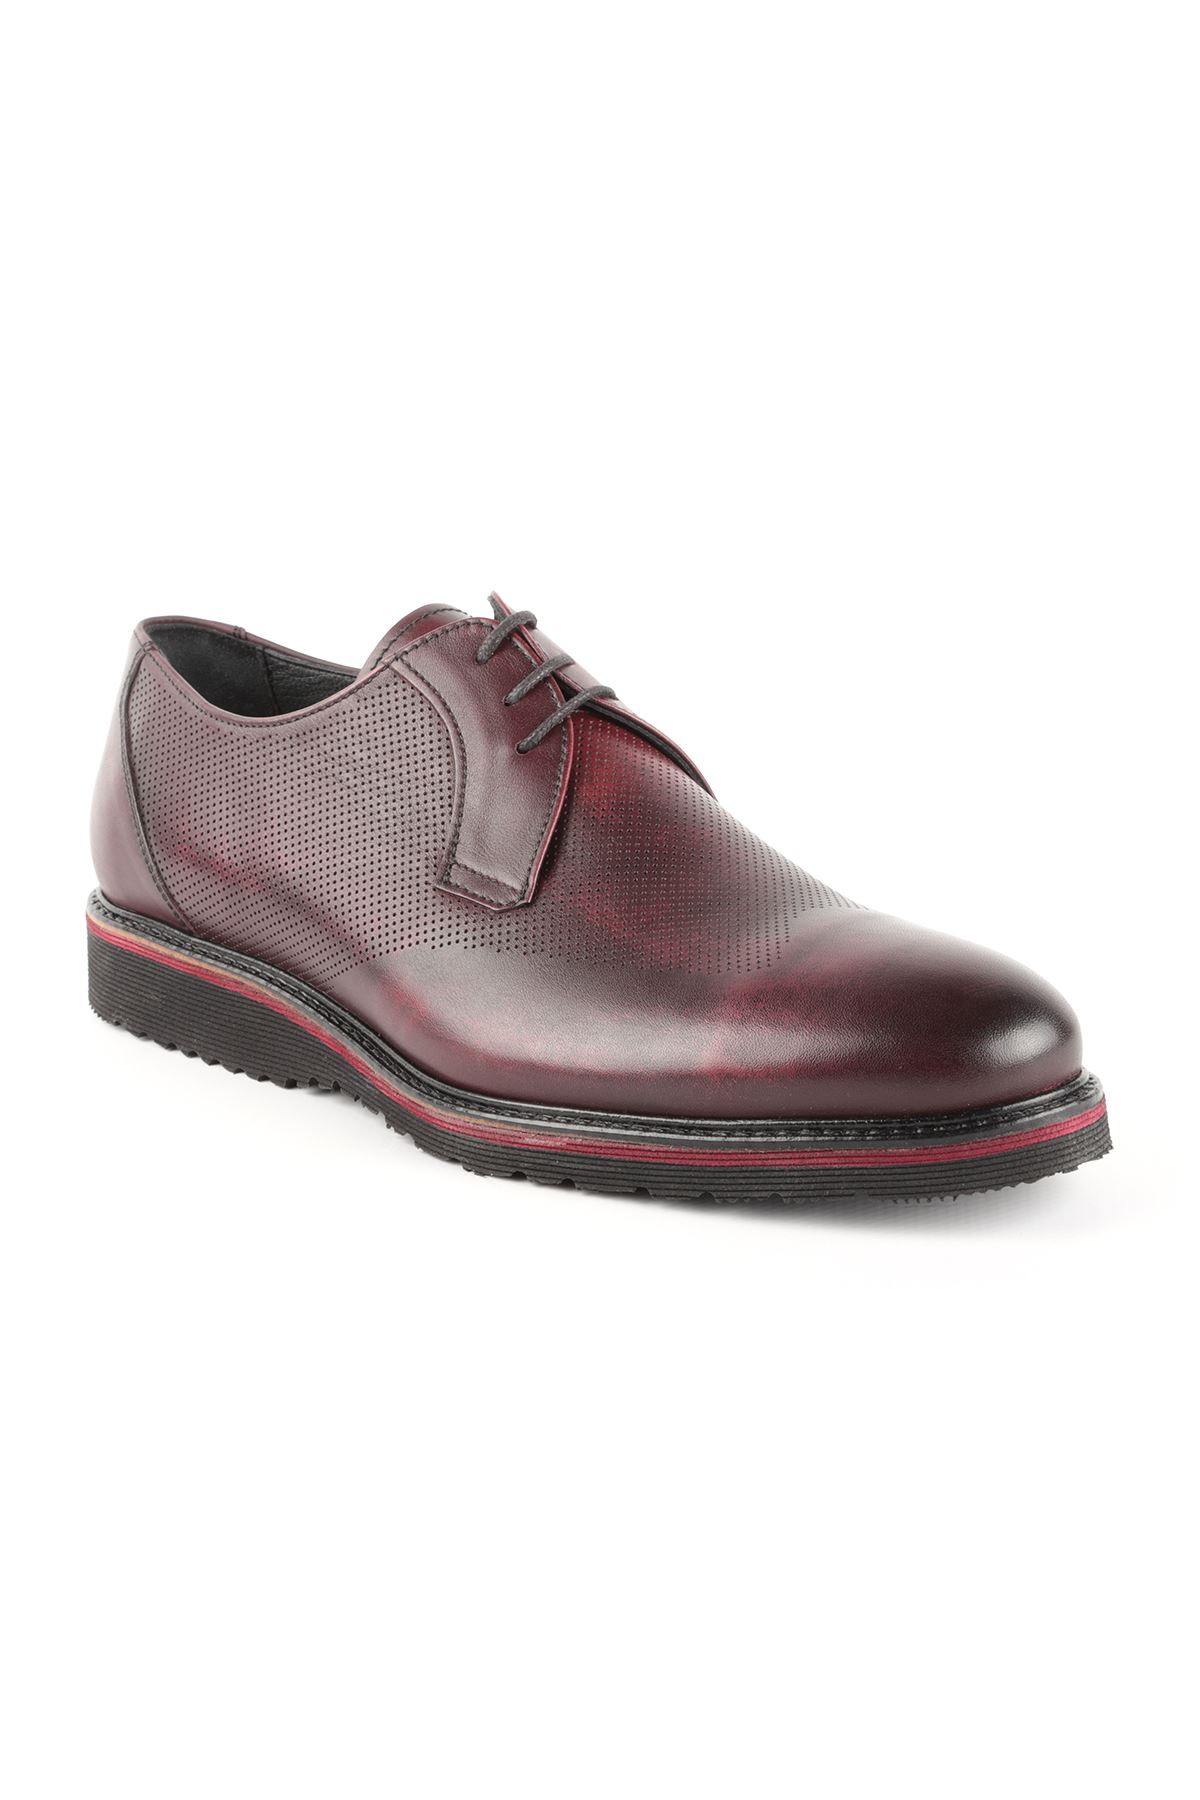 Libero T1409 Claret Red Casual Shoes